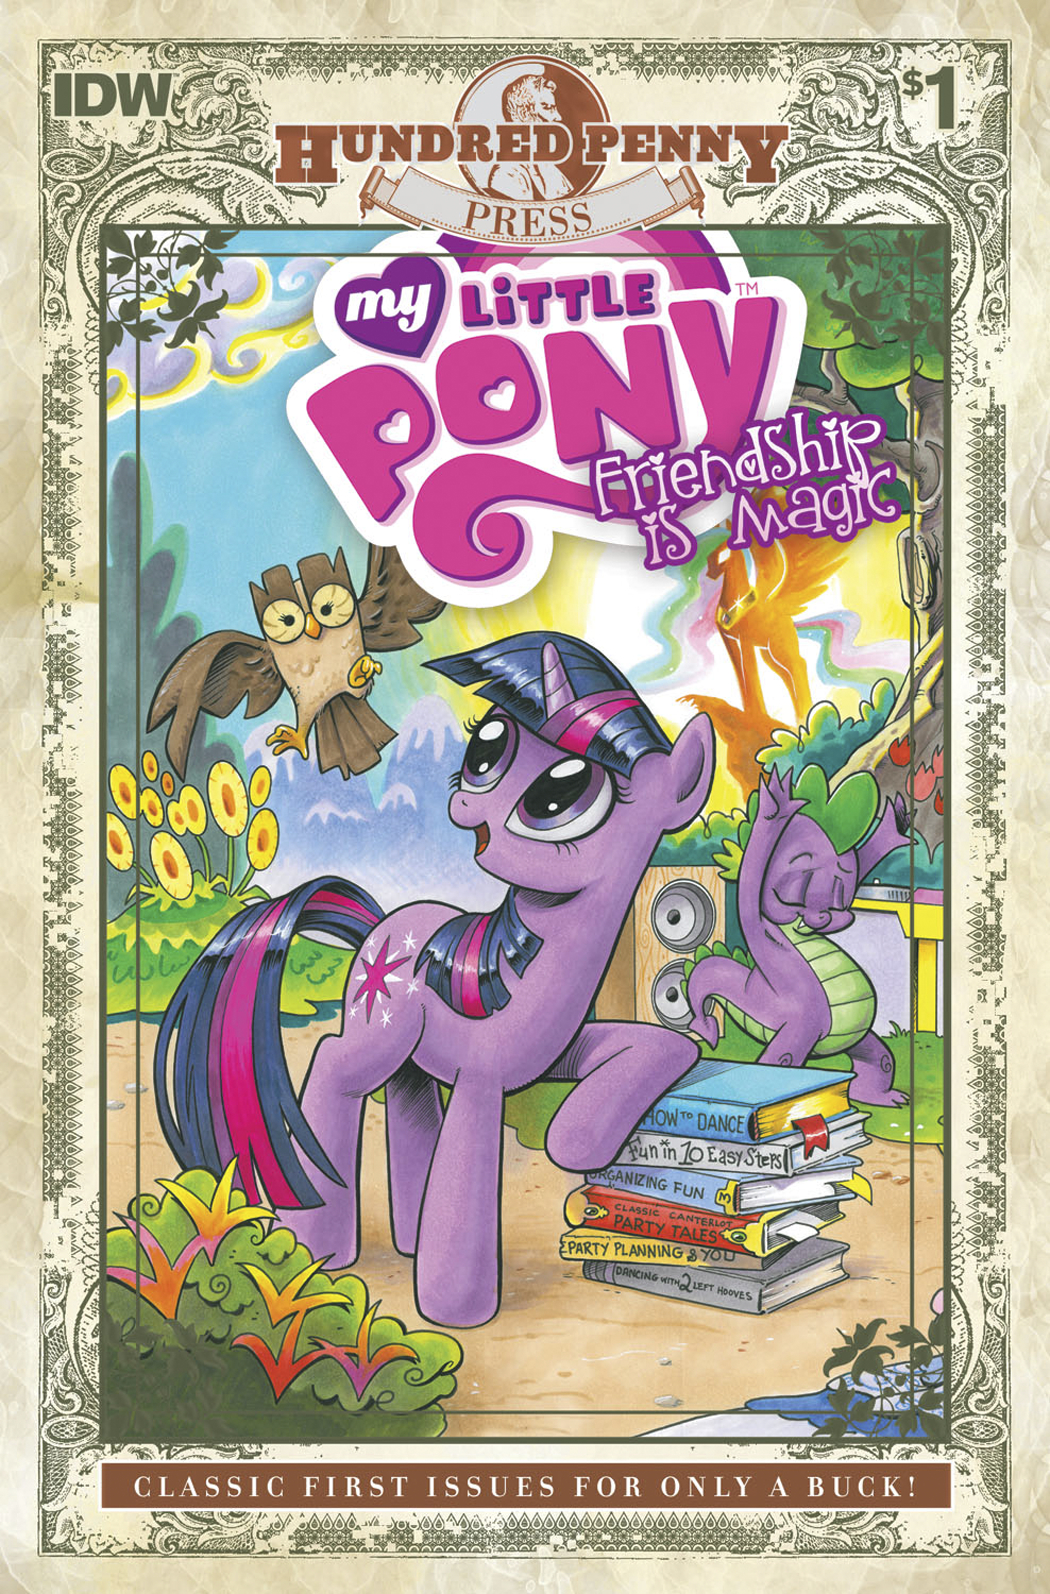 MLP FRIENDSHIP IS MAGIC 100 PENNY PRESS #1 100 COPY INCV